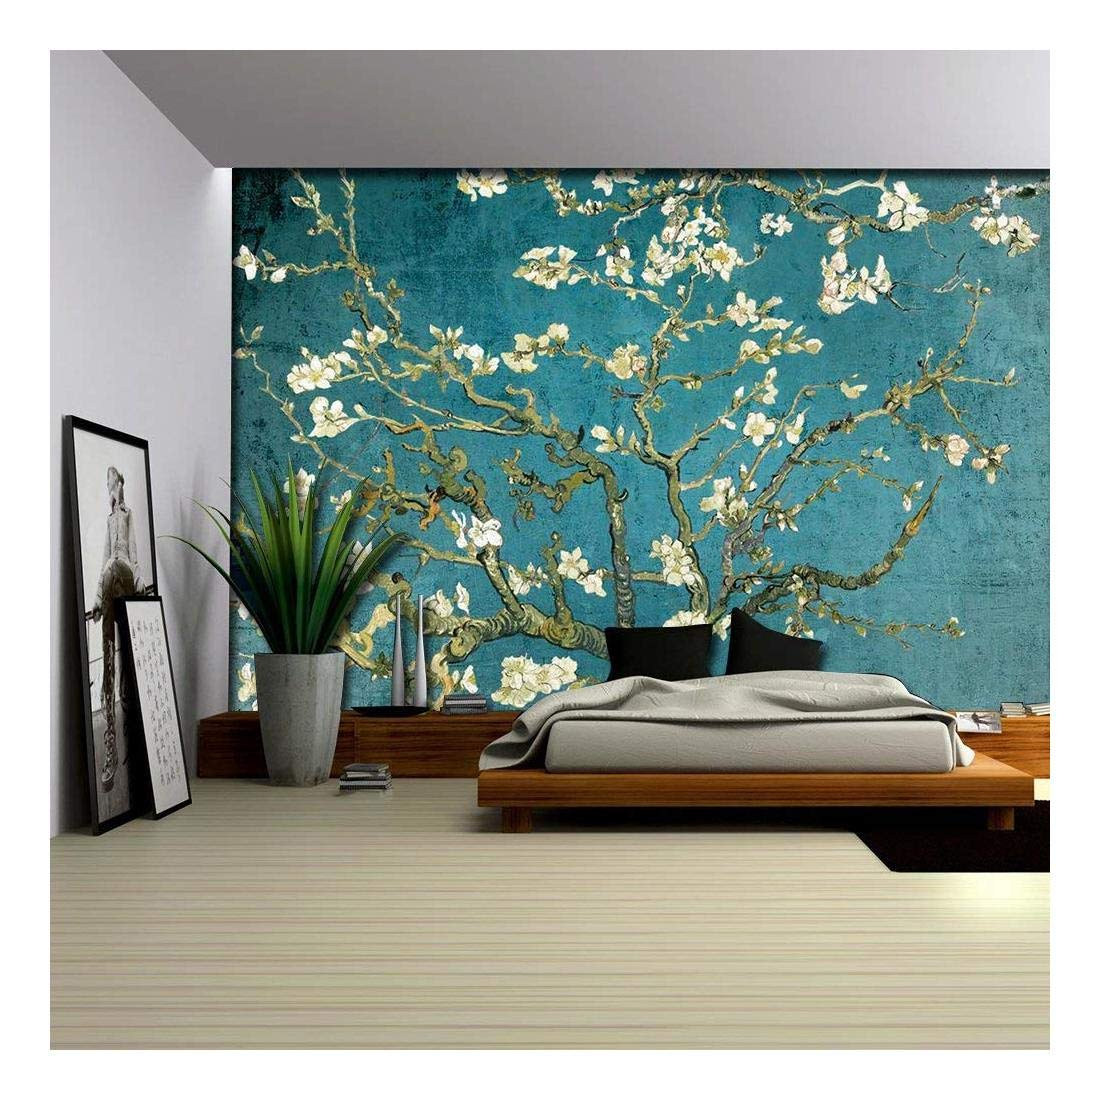 wall26 - Vibrant Teal Gradient Almond Blossom by Vincent Van Gogh - Wall Mural, Removable Sticker, Home Decor - 100x144 inches by wall26 (Image #1)